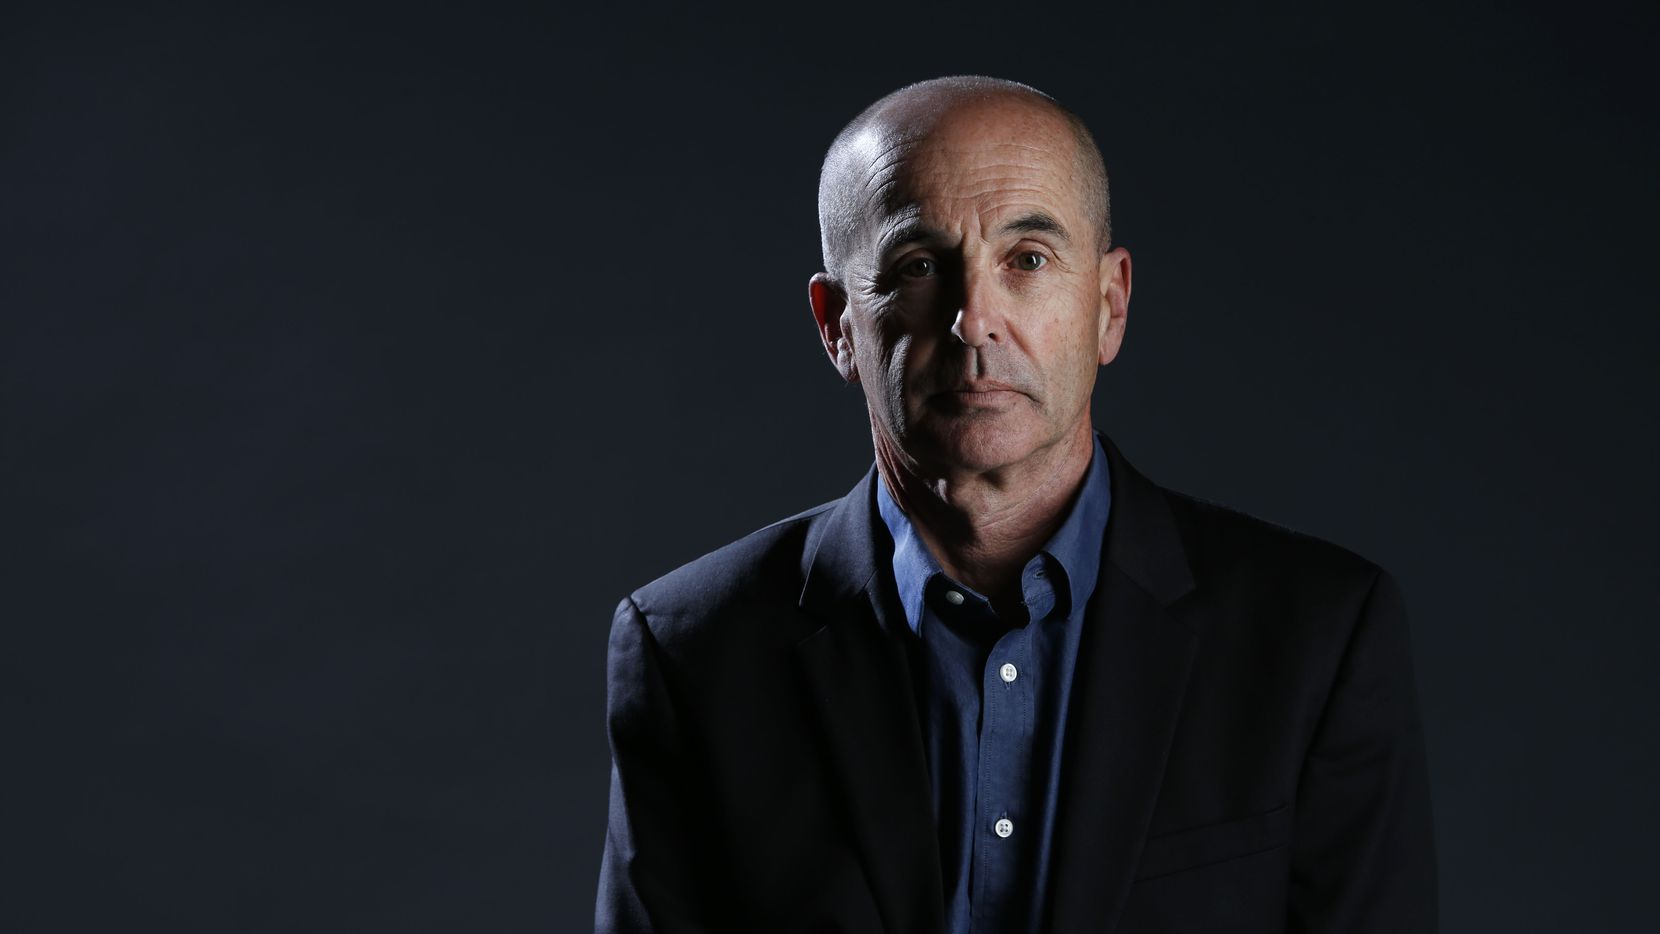 """Author Don Winslow's work includes a dozen of the finest crime novels written in the last 20 years, including """"Savages,"""" """"The Force"""" and """"The Border."""""""